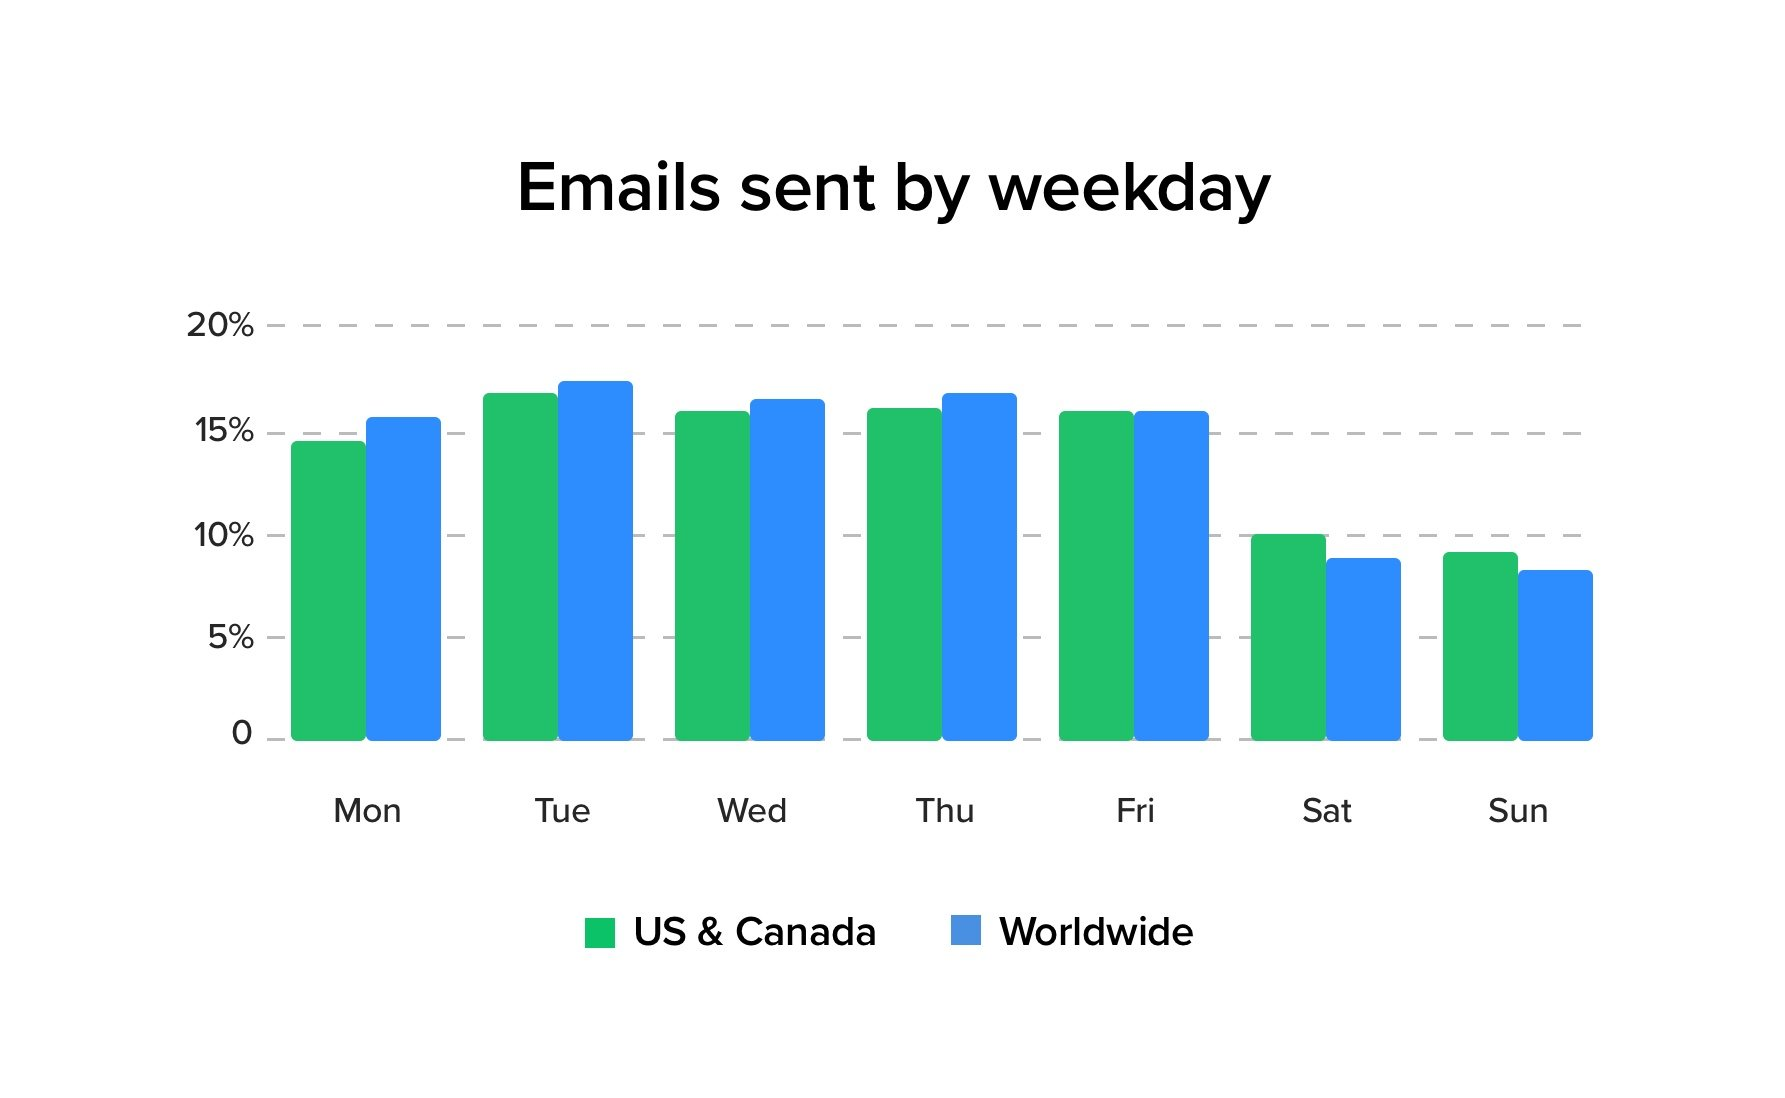 Number of emails sent by weekday